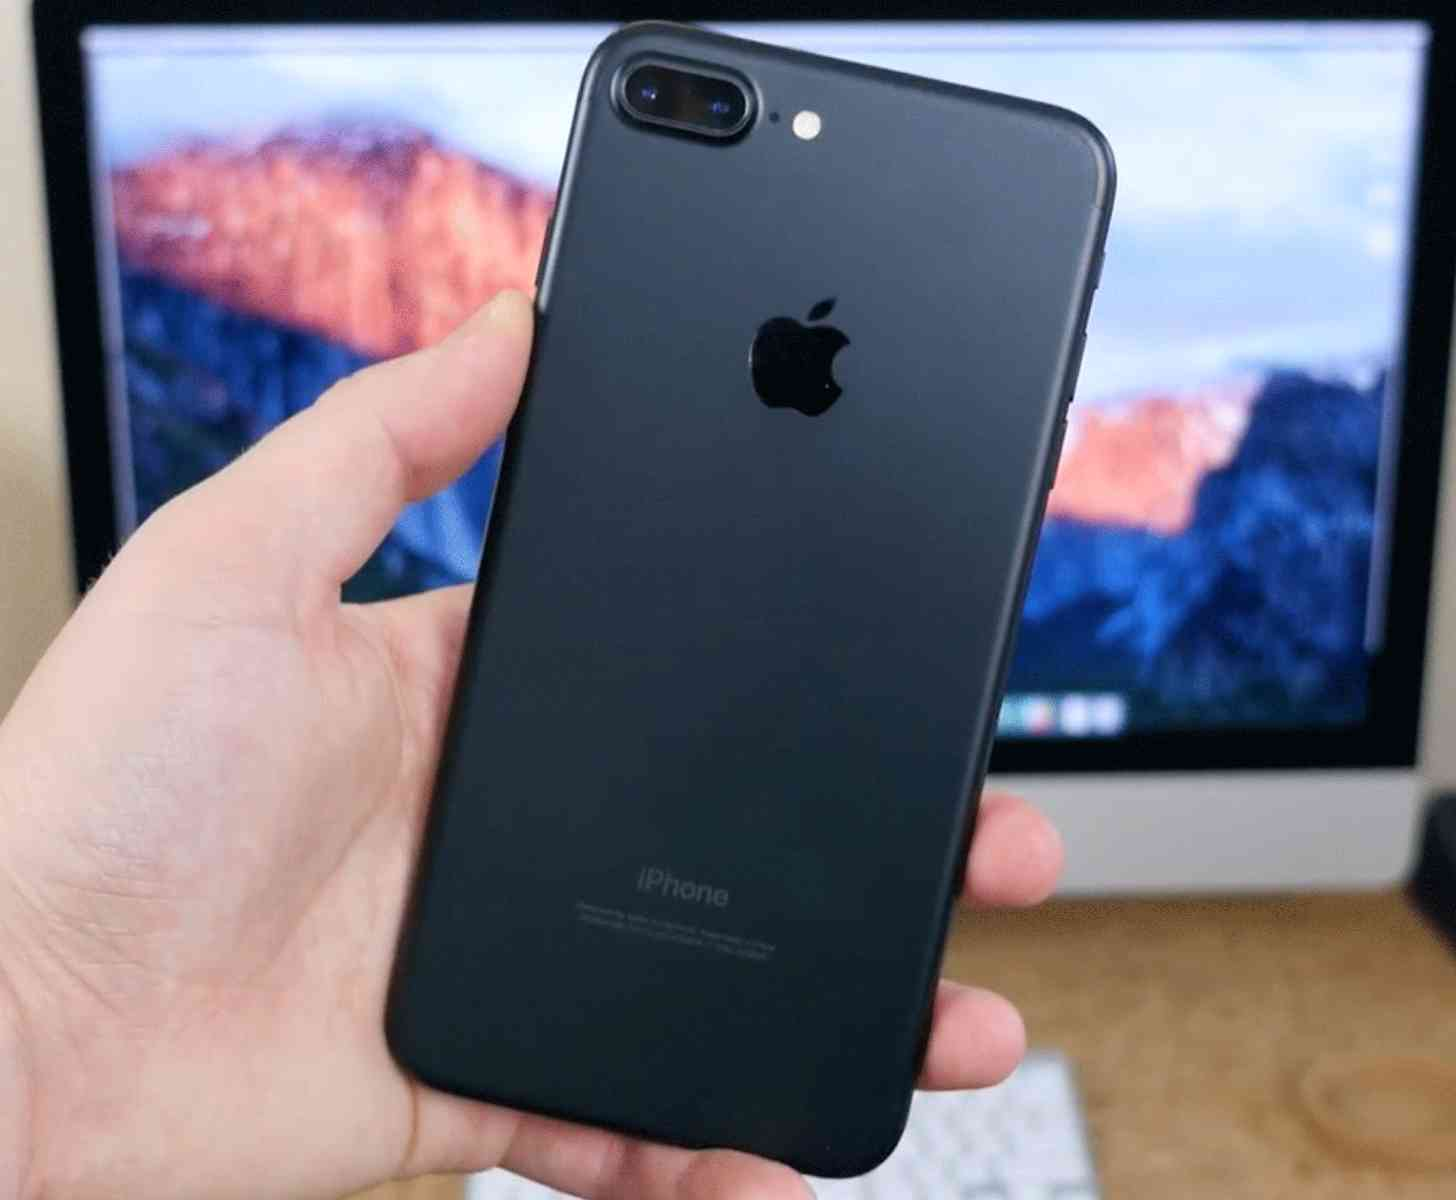 iPhone 7 Plus hands-on